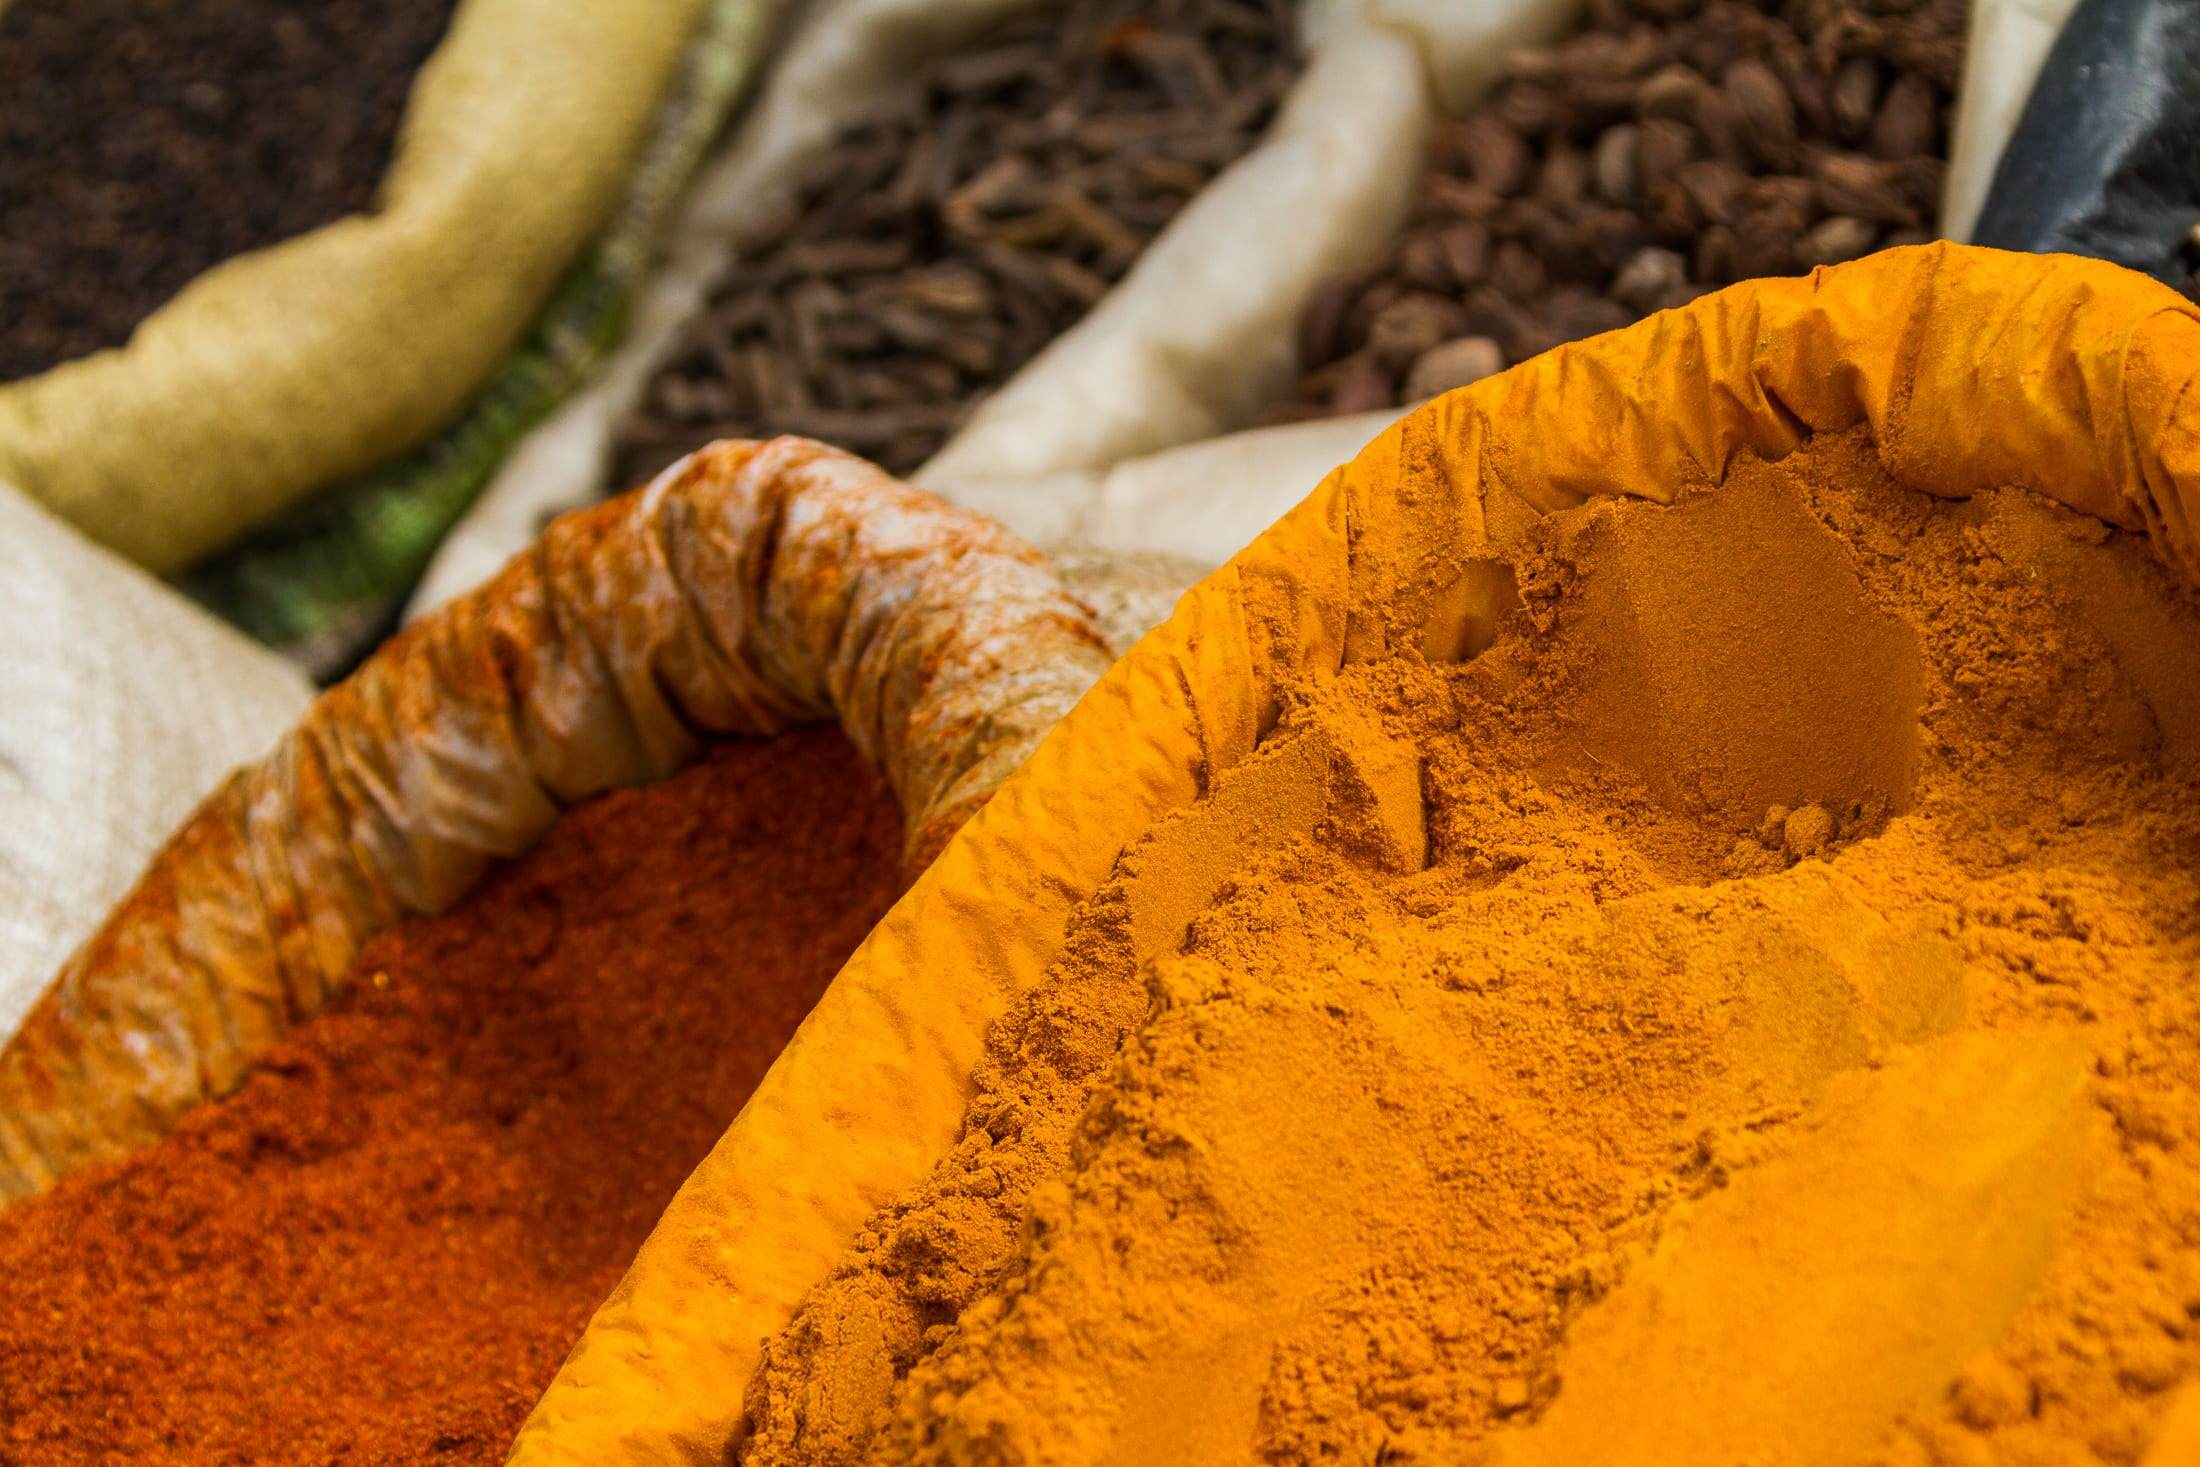 Brightly colored spices at an open market in Kathmandu, Nepal